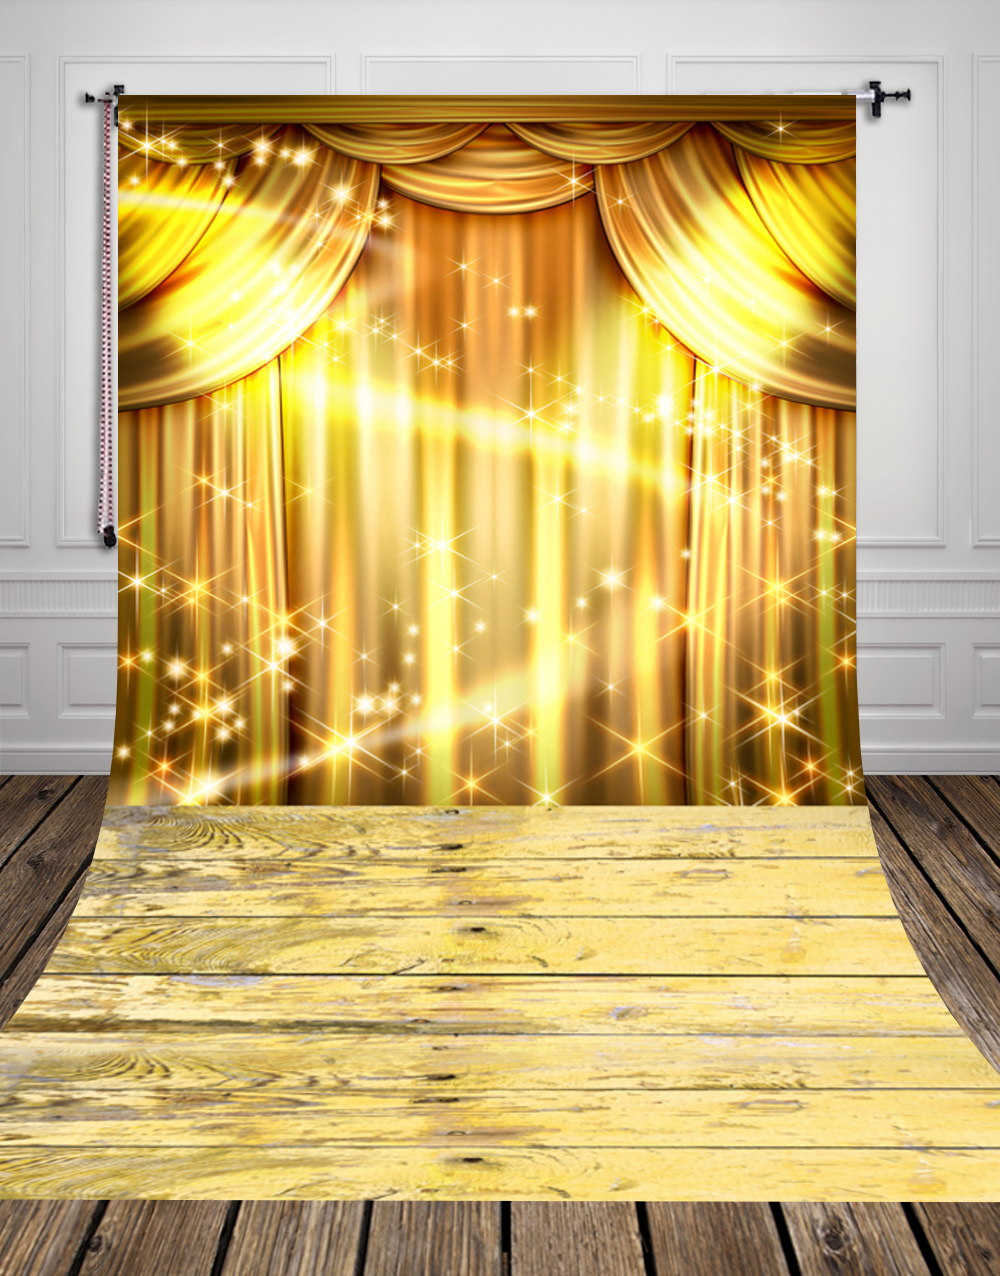 Bl blue stage curtains background - Huayi Gold Curtain Photography Backdrops Yellow Glitter Photo Background Stage Photo Background Fabric Backdrops For Photo D9945 In Background From Consumer